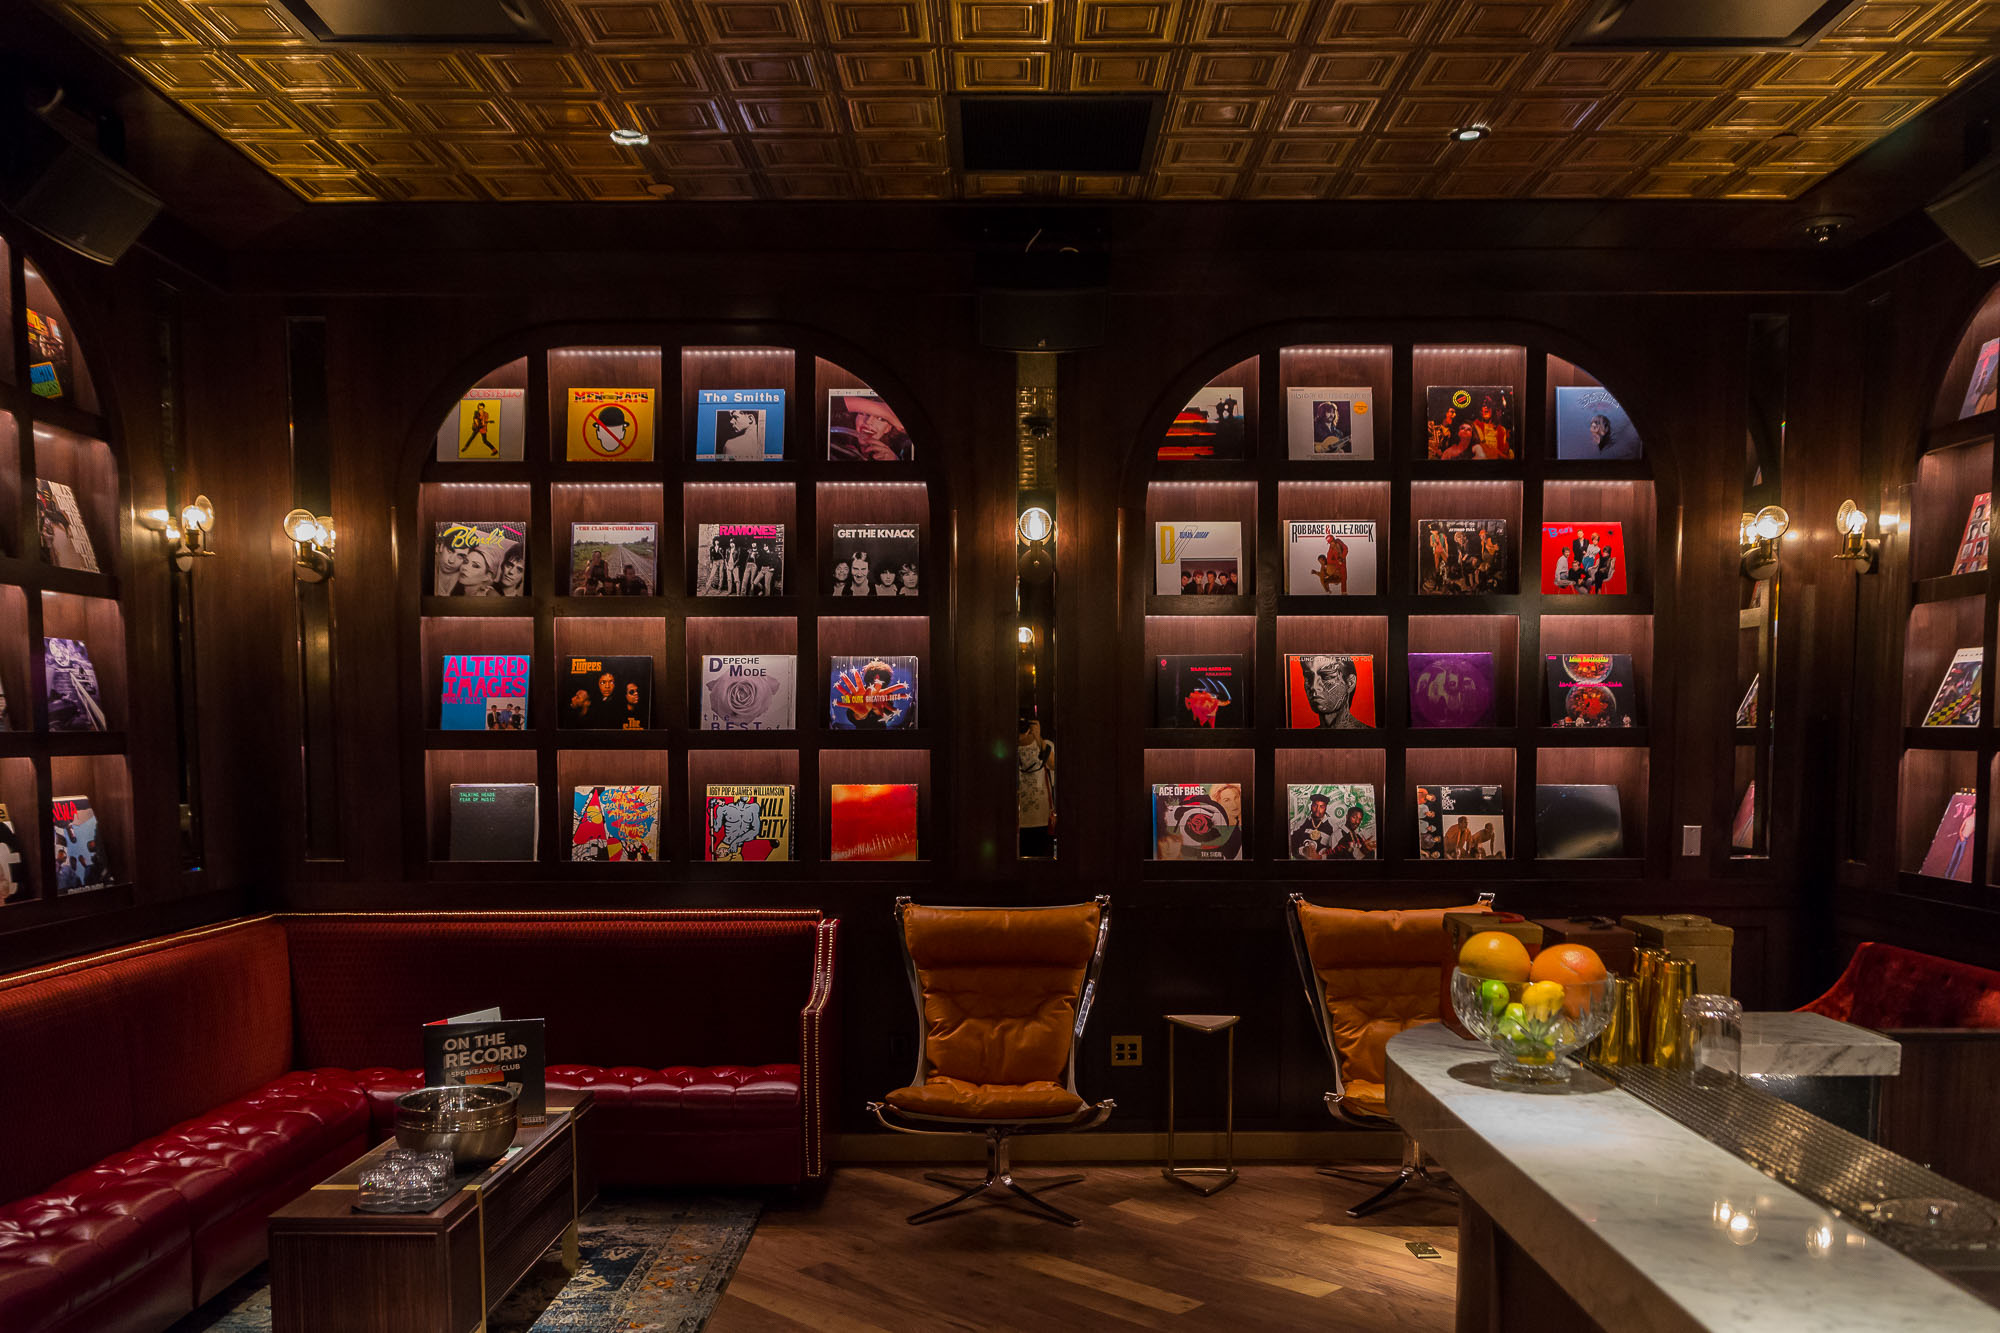 The Vinyl Room at On the Record